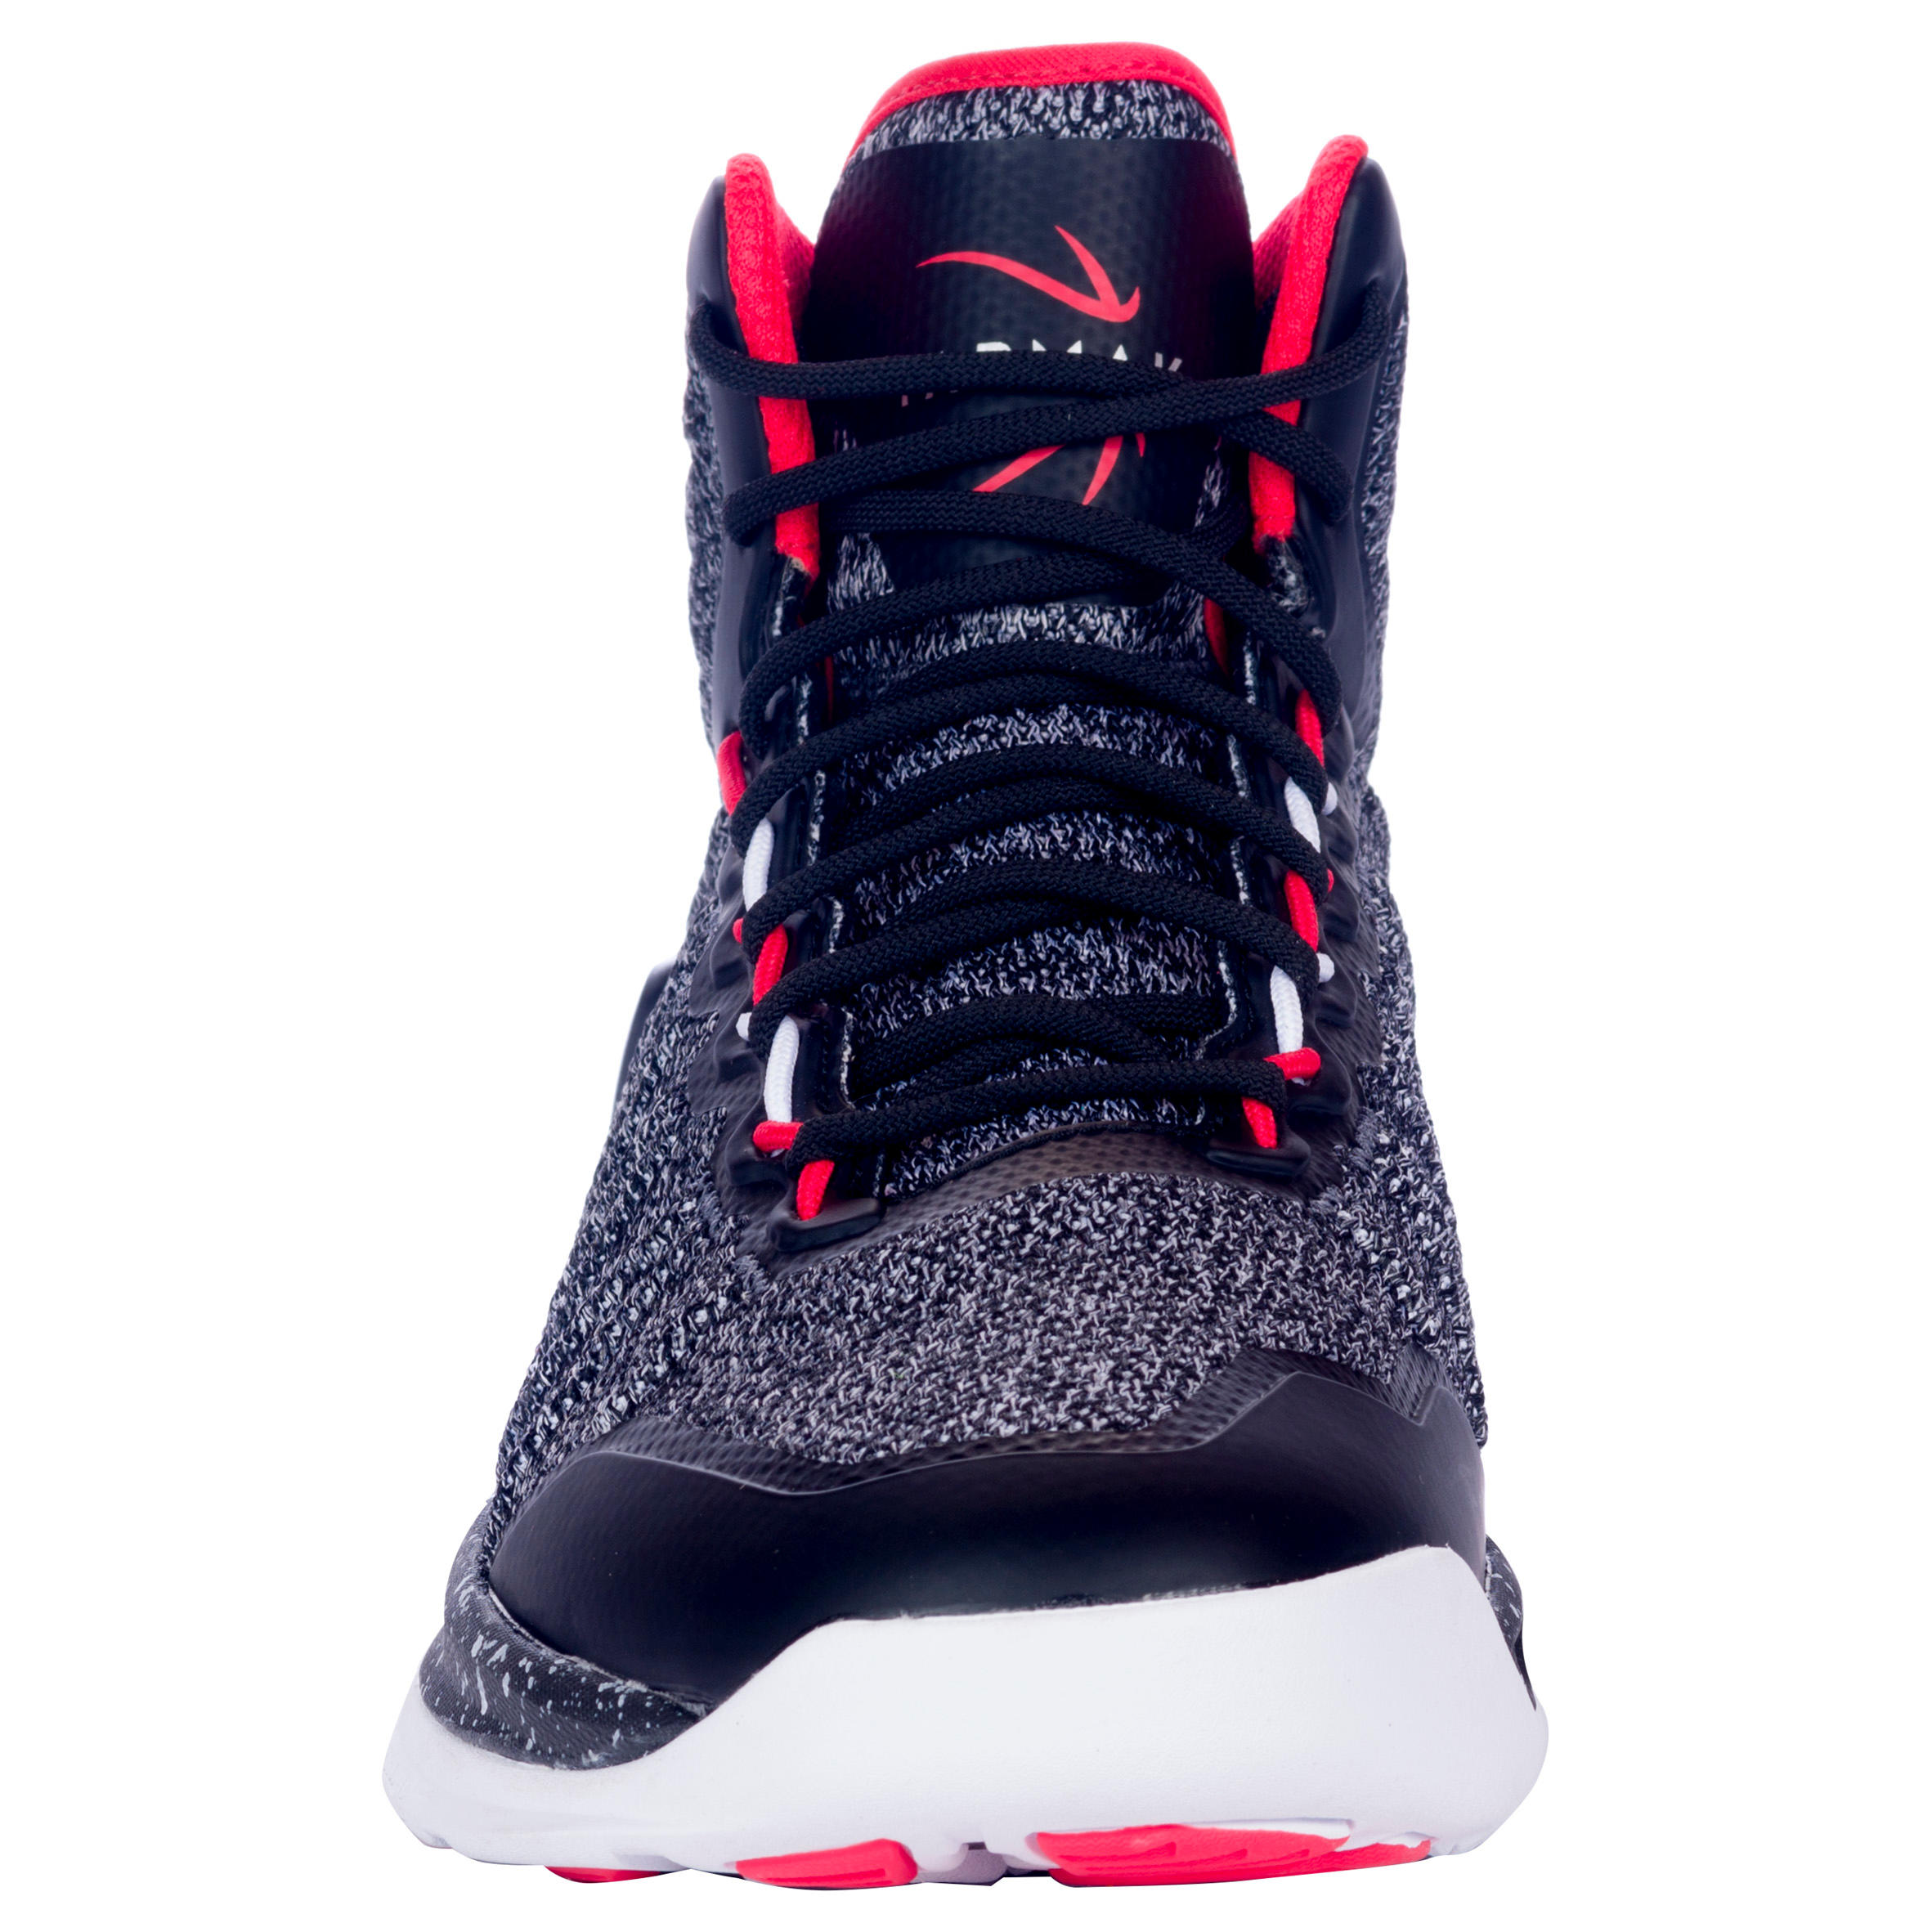 Shield 500 Intermediate Adult Basketball Shoes - Black / Red